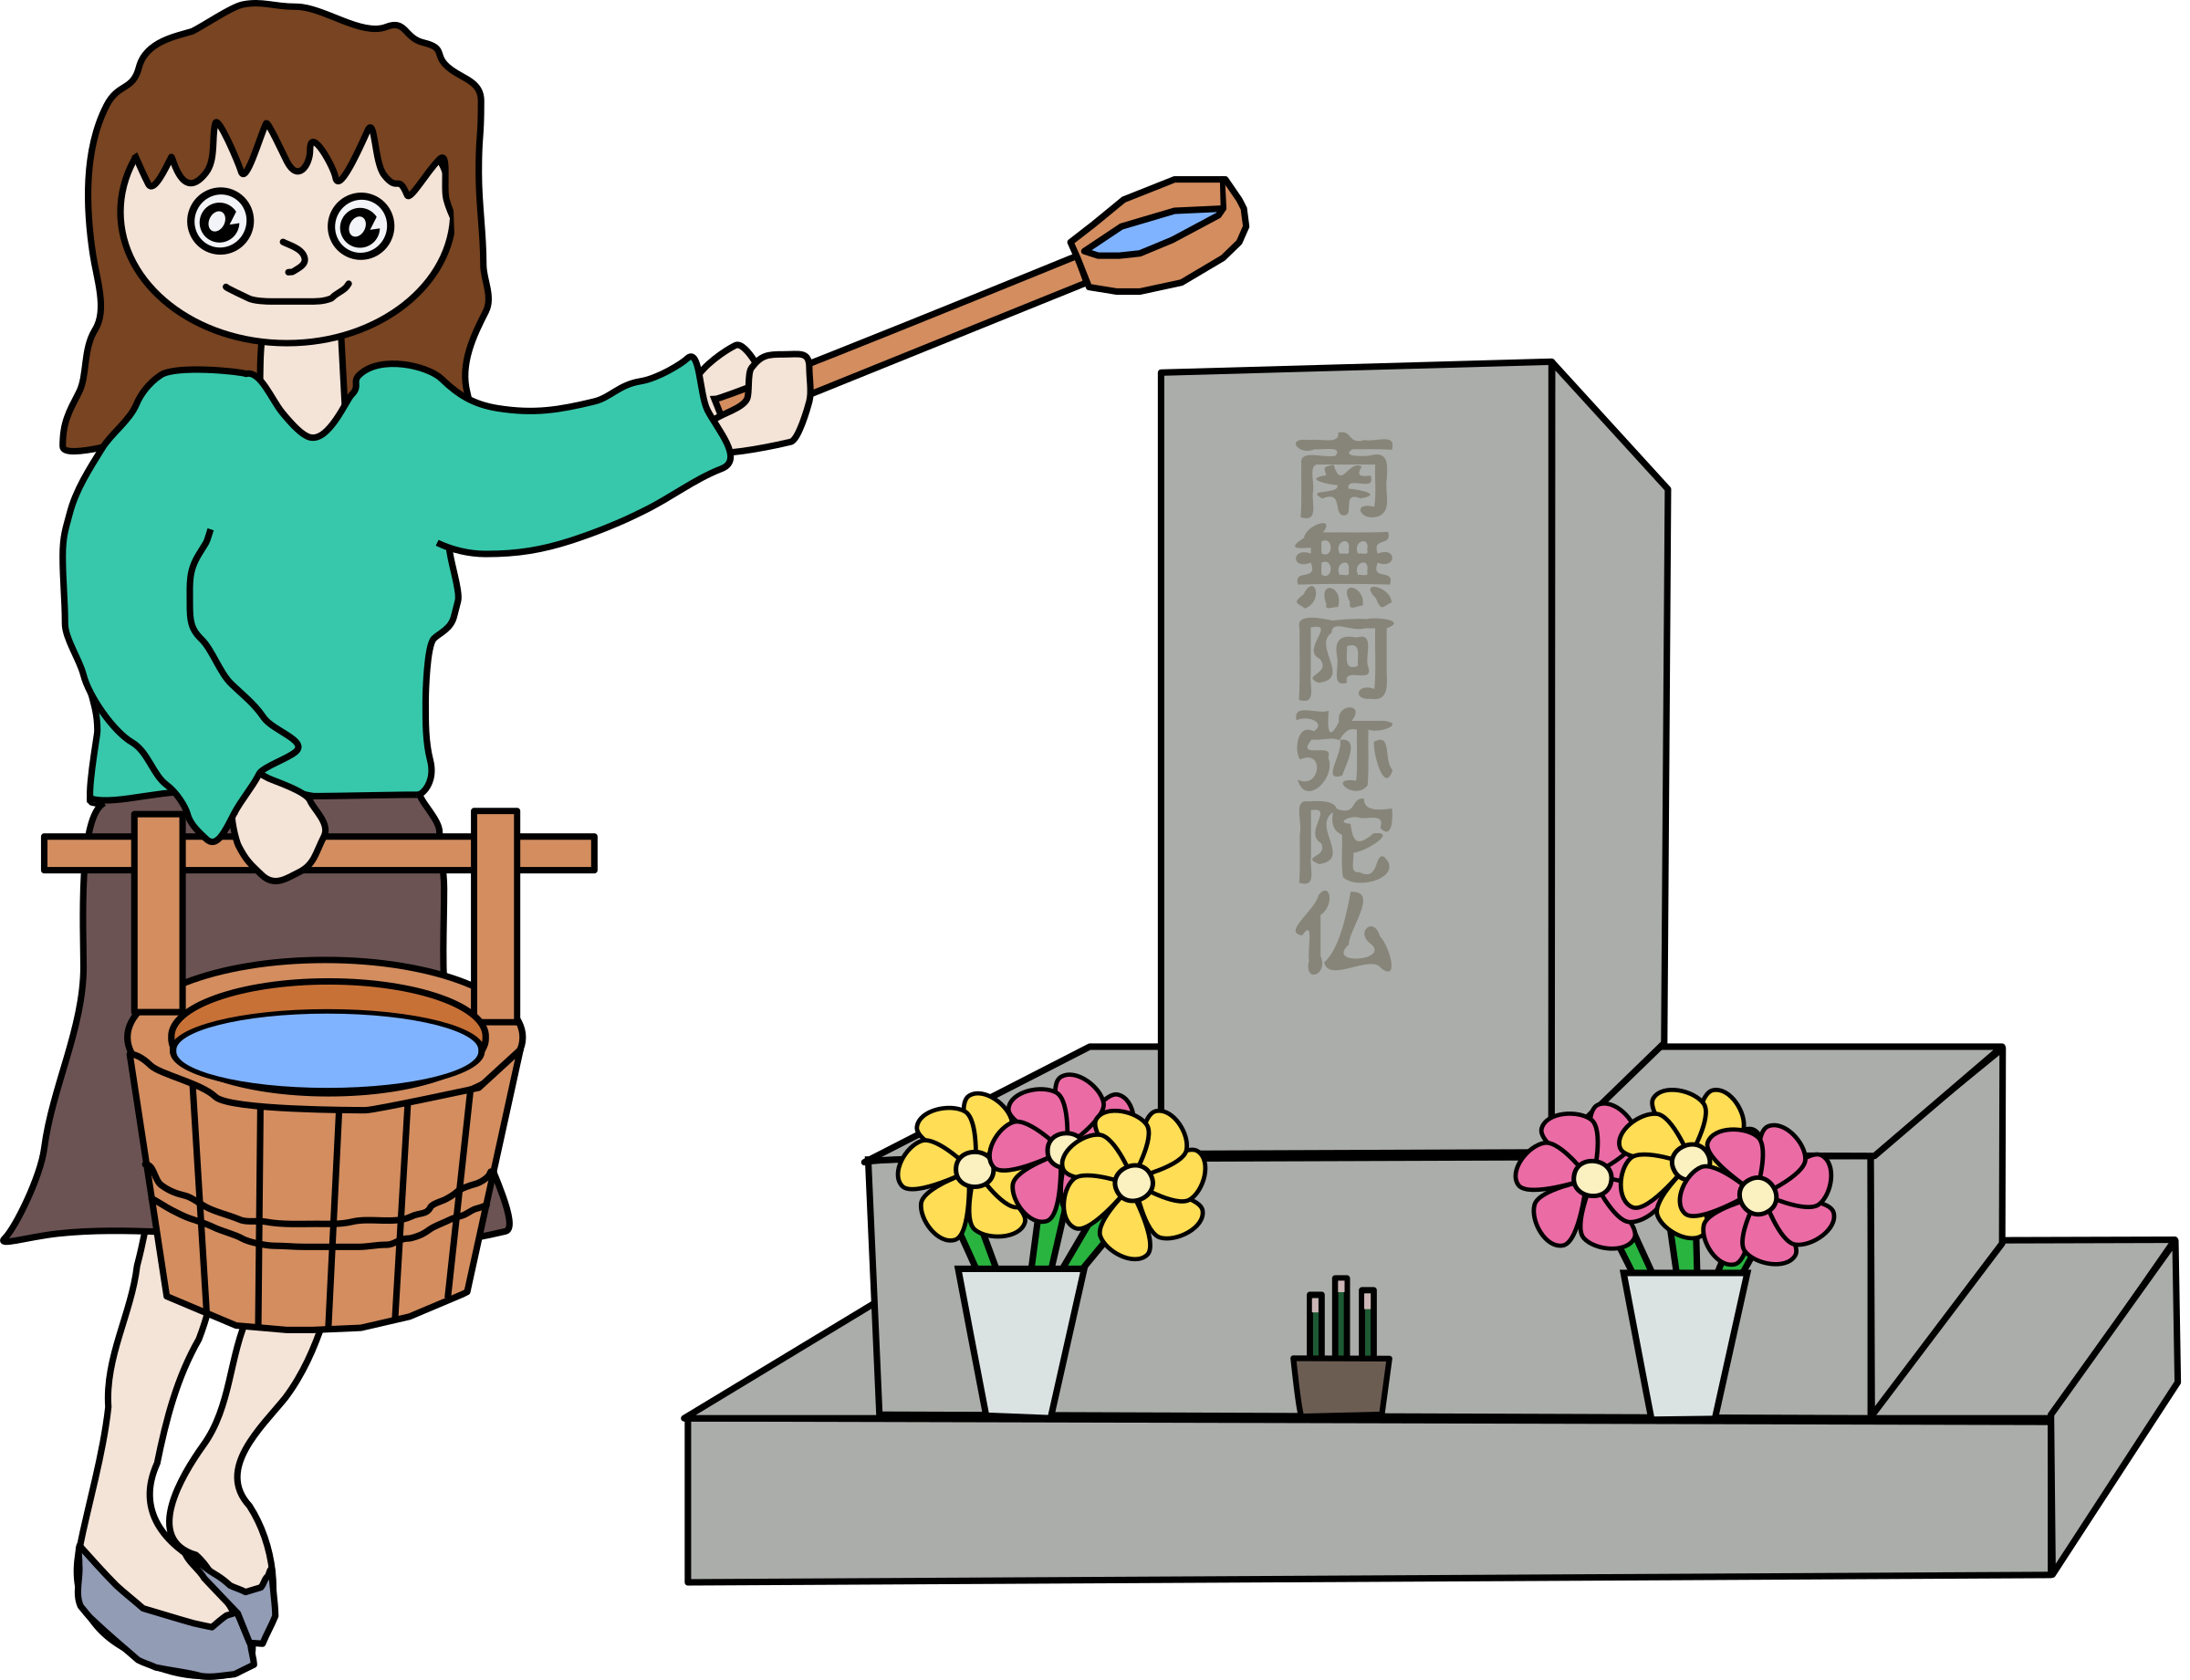 Cemetery clipart obon. Gravestone tomb pencil and